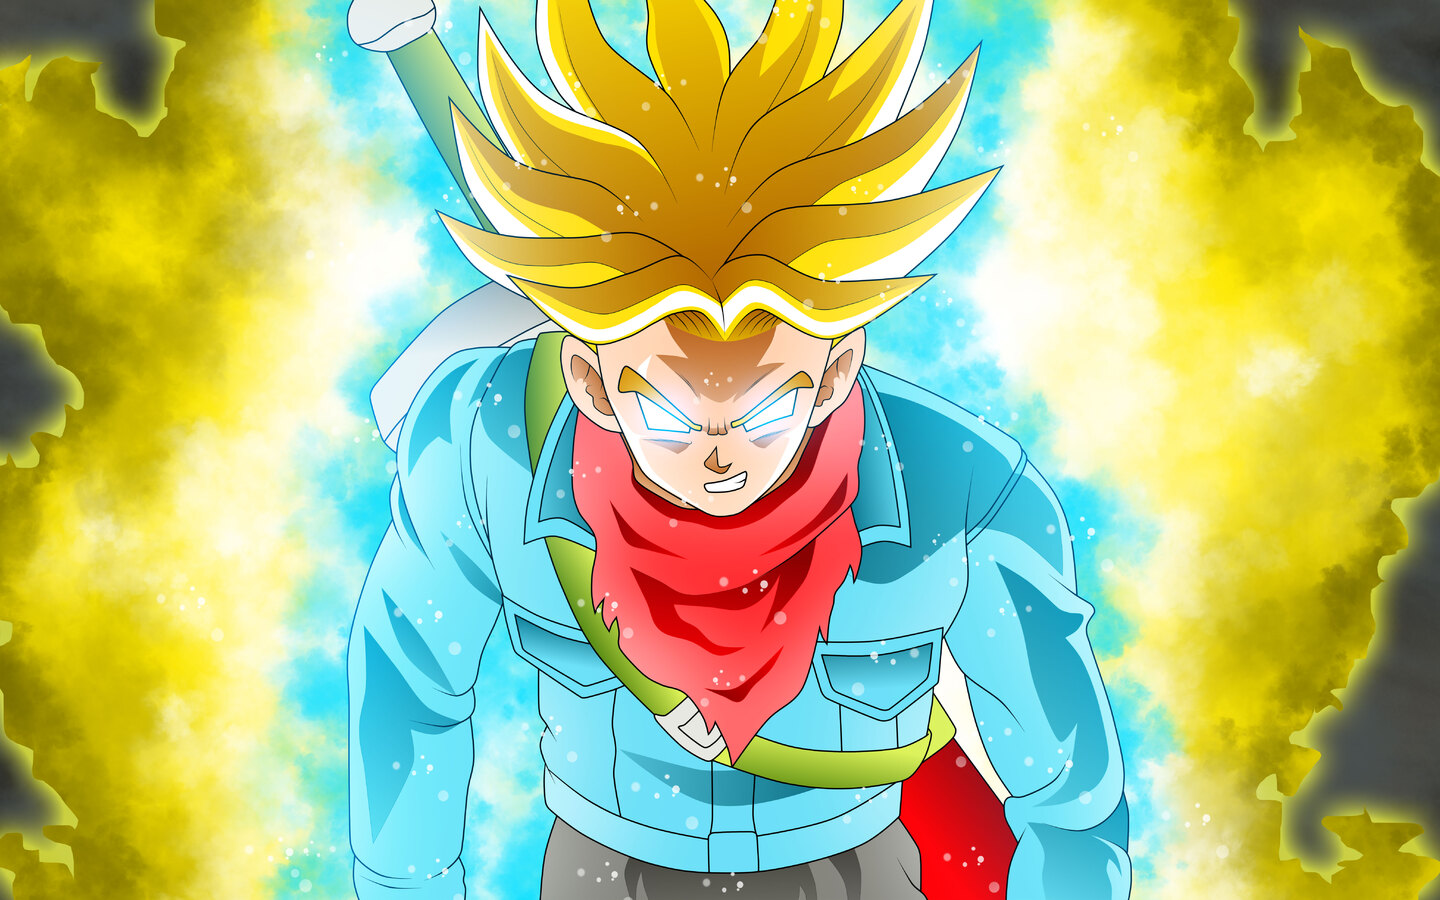 1440x900 Trunks Dragon Ball Super 1440x900 Resolution HD 4k Wallpapers, Images, Backgrounds ...